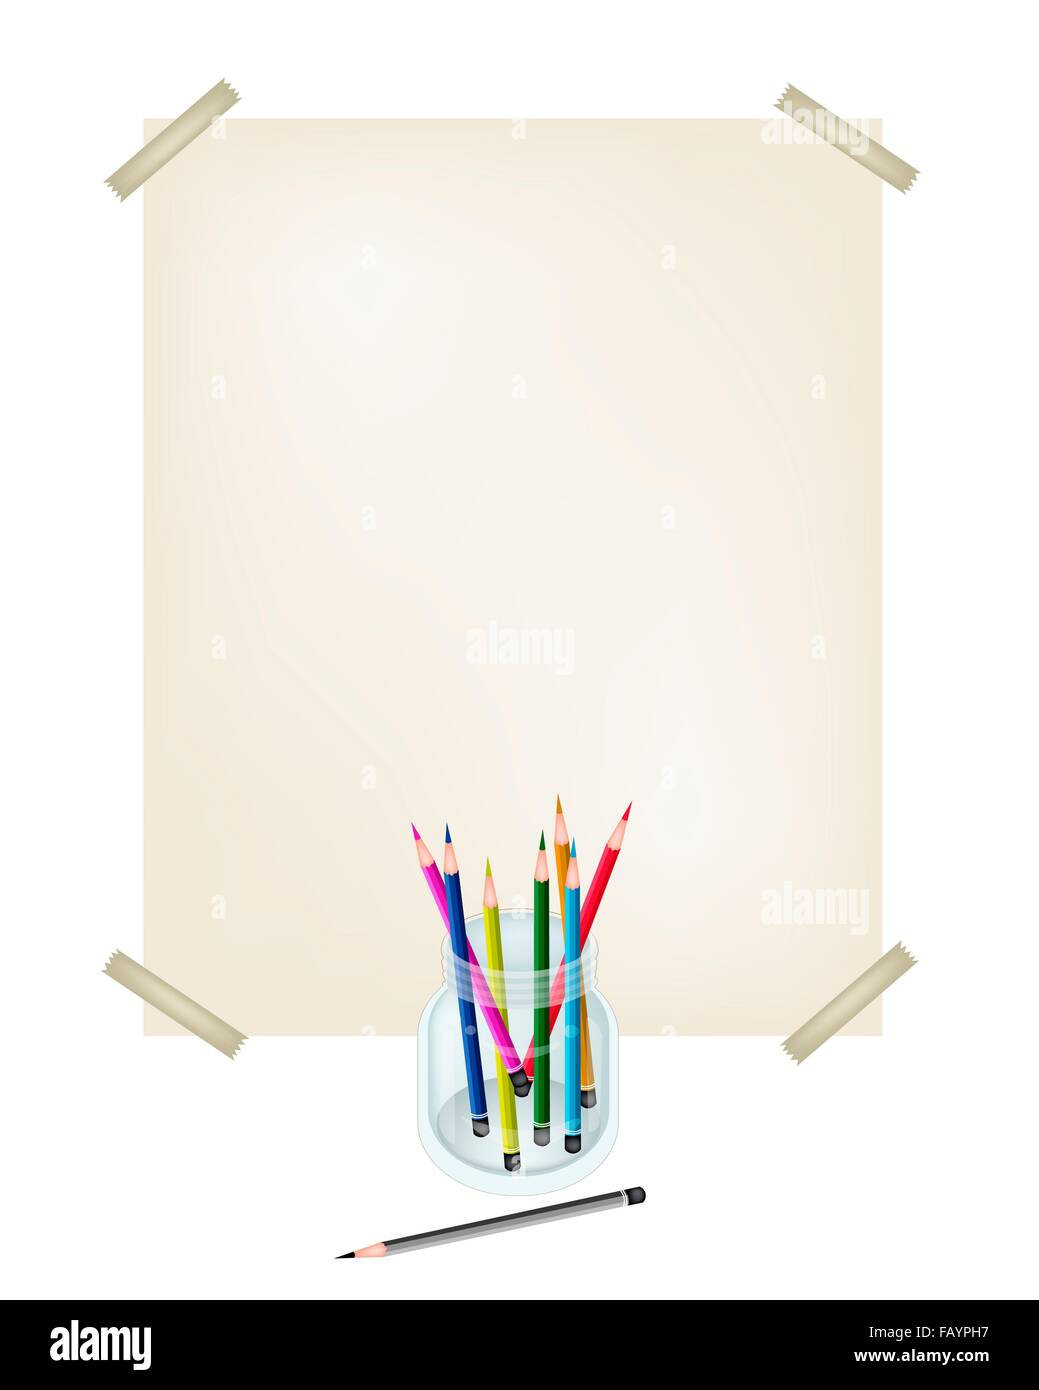 hight resolution of art supply an illustration collection of colorful colored pencil crayons in glass jar with a drawing paper for sketch